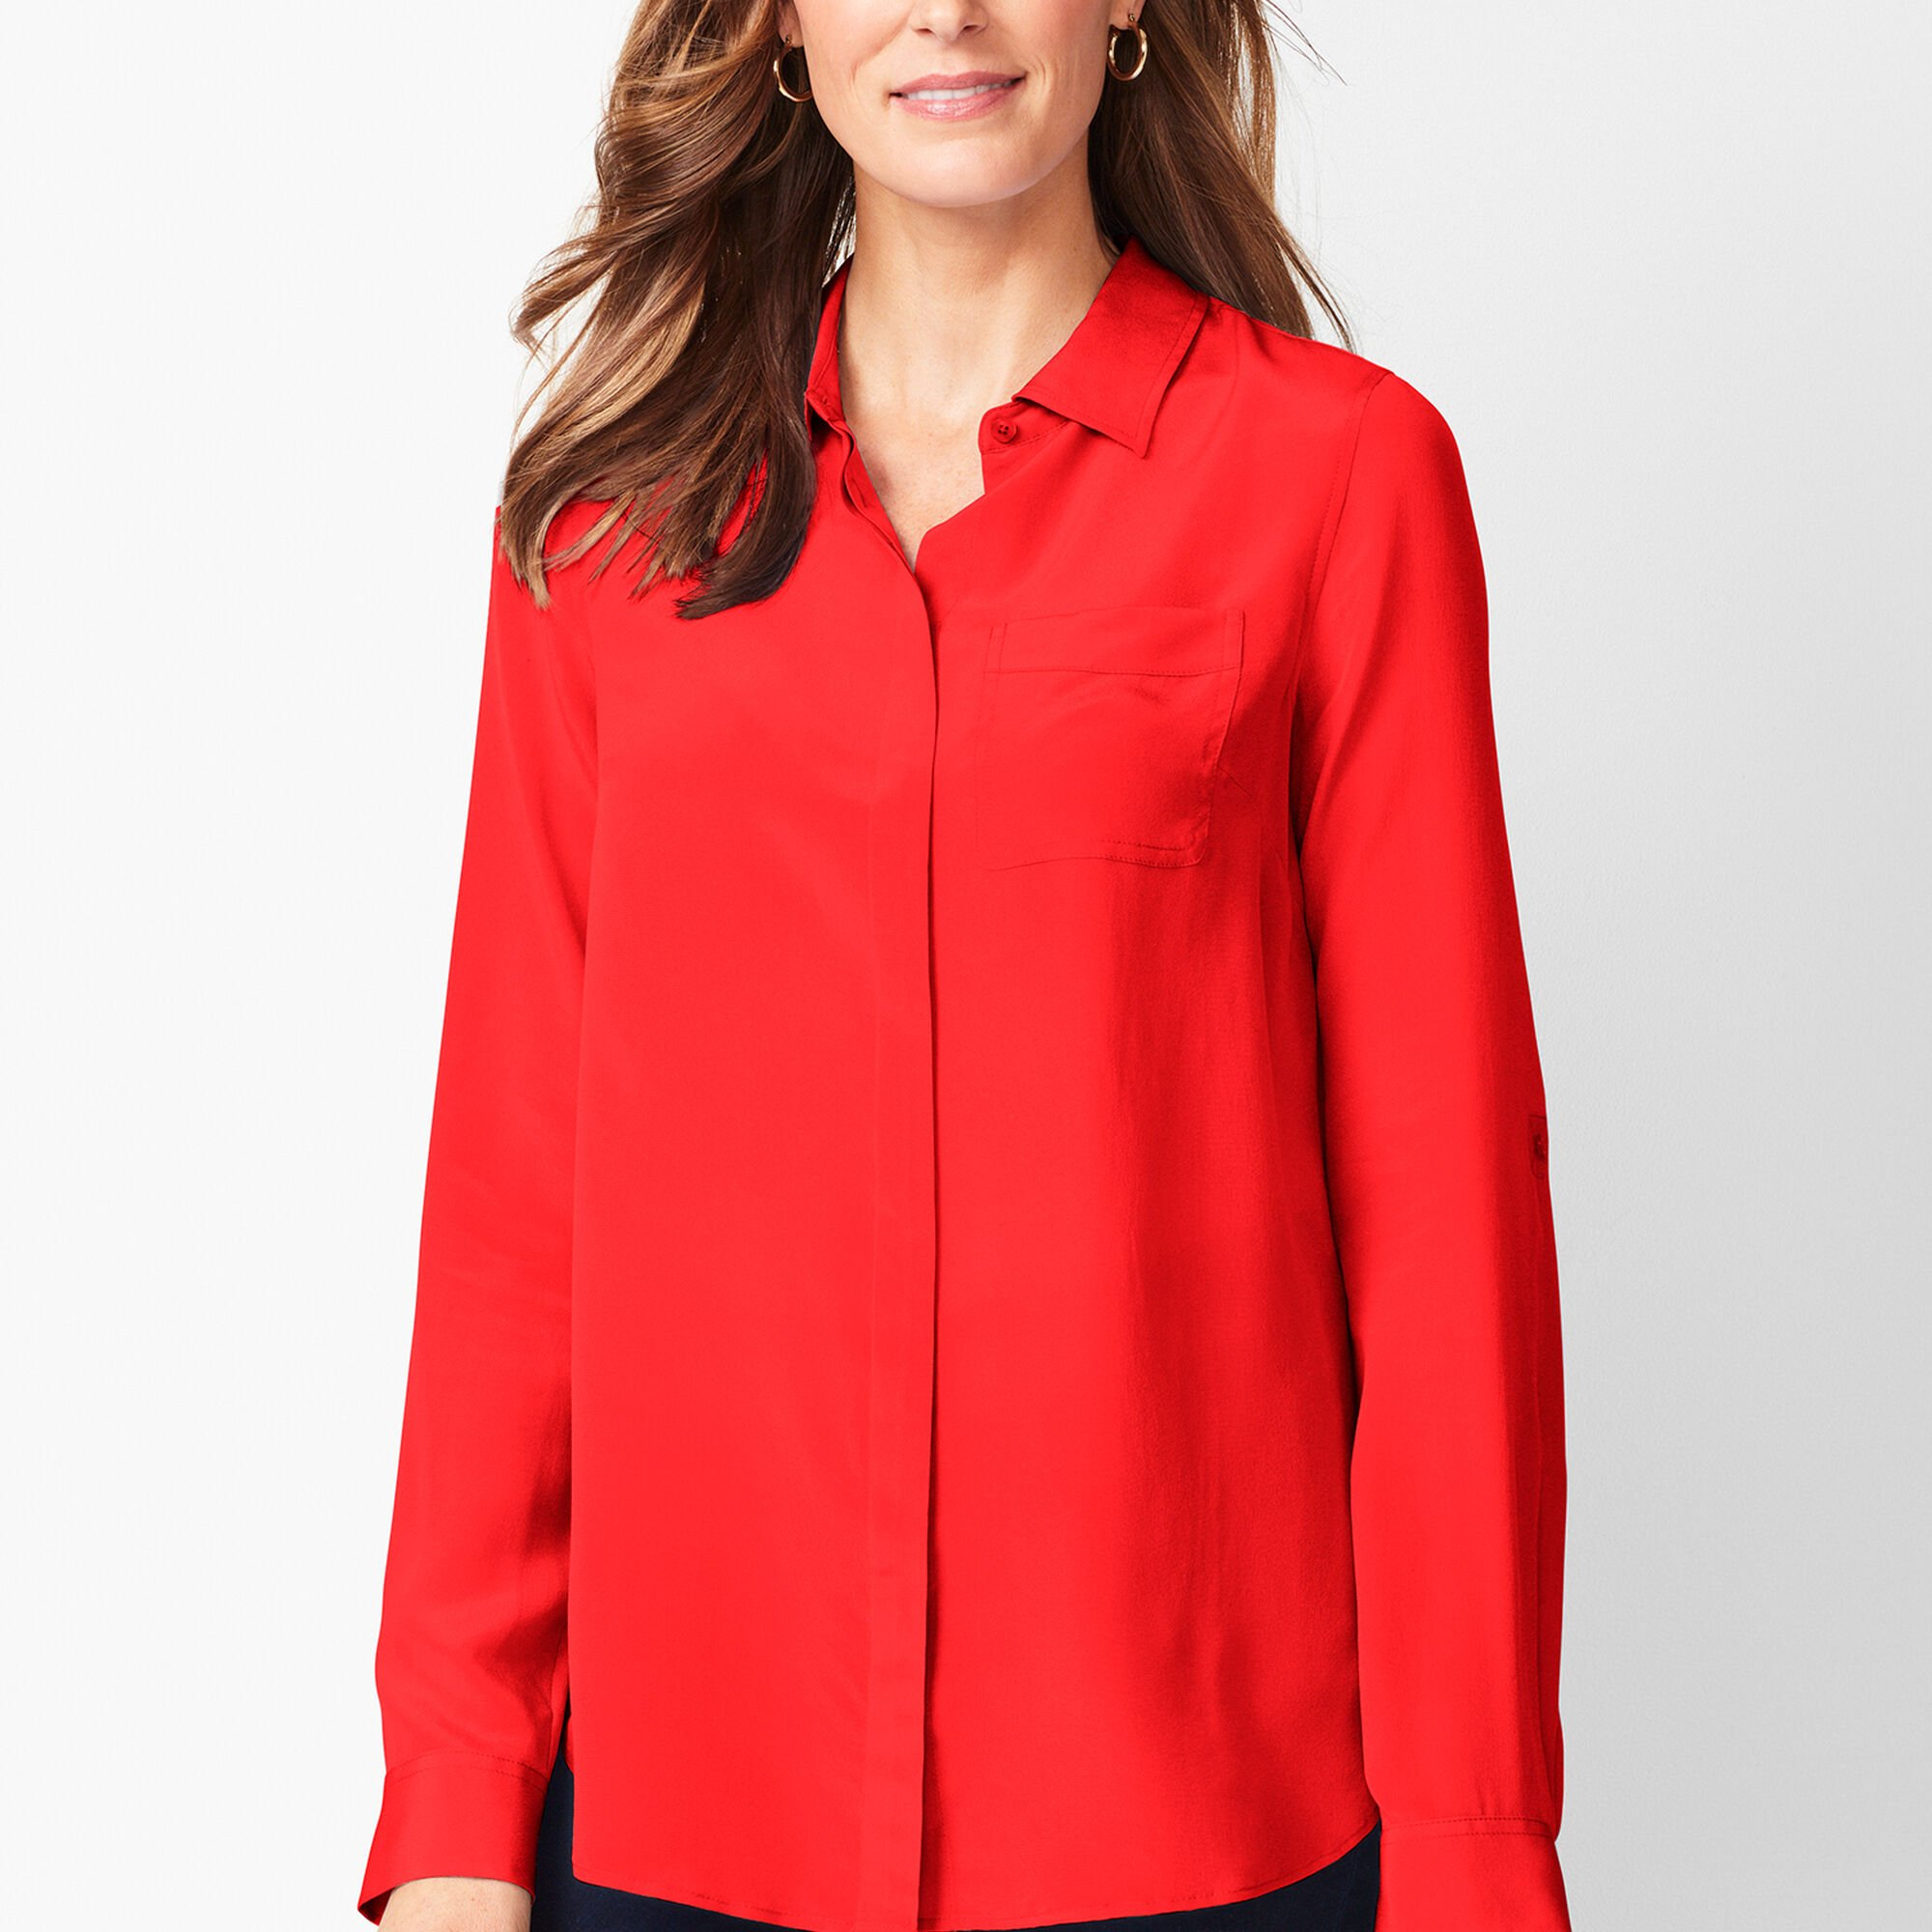 ac2c623feba5d Washable-Silk Button-Down Shirt - Solid Opens a New Window.